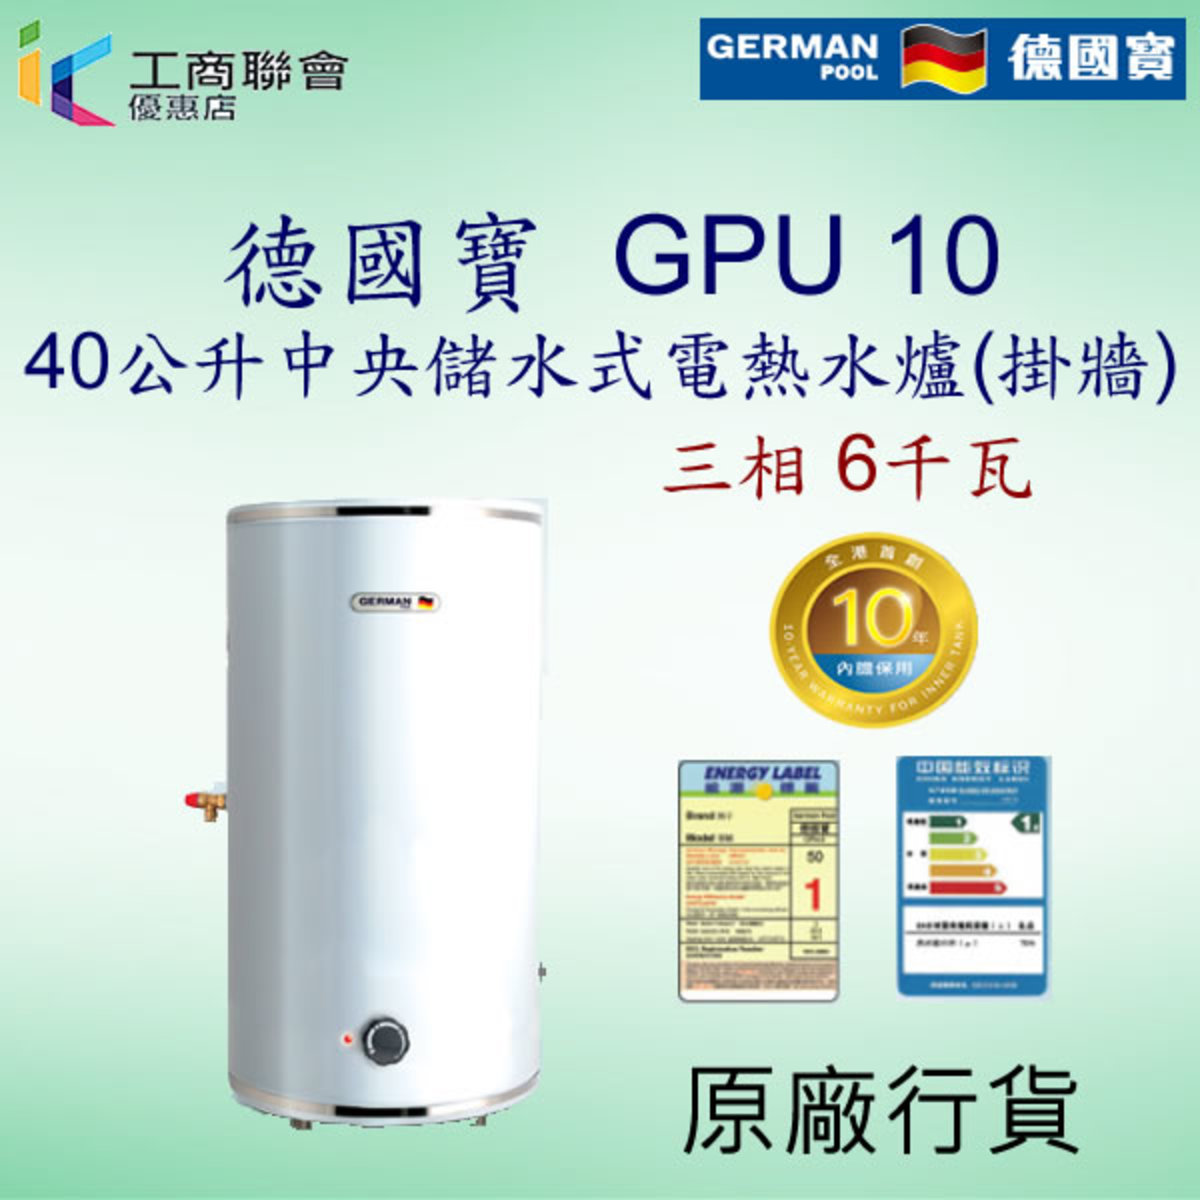 German Pool  GPU10 40 litres 6KW central water storage electric water heater (hanging wall)